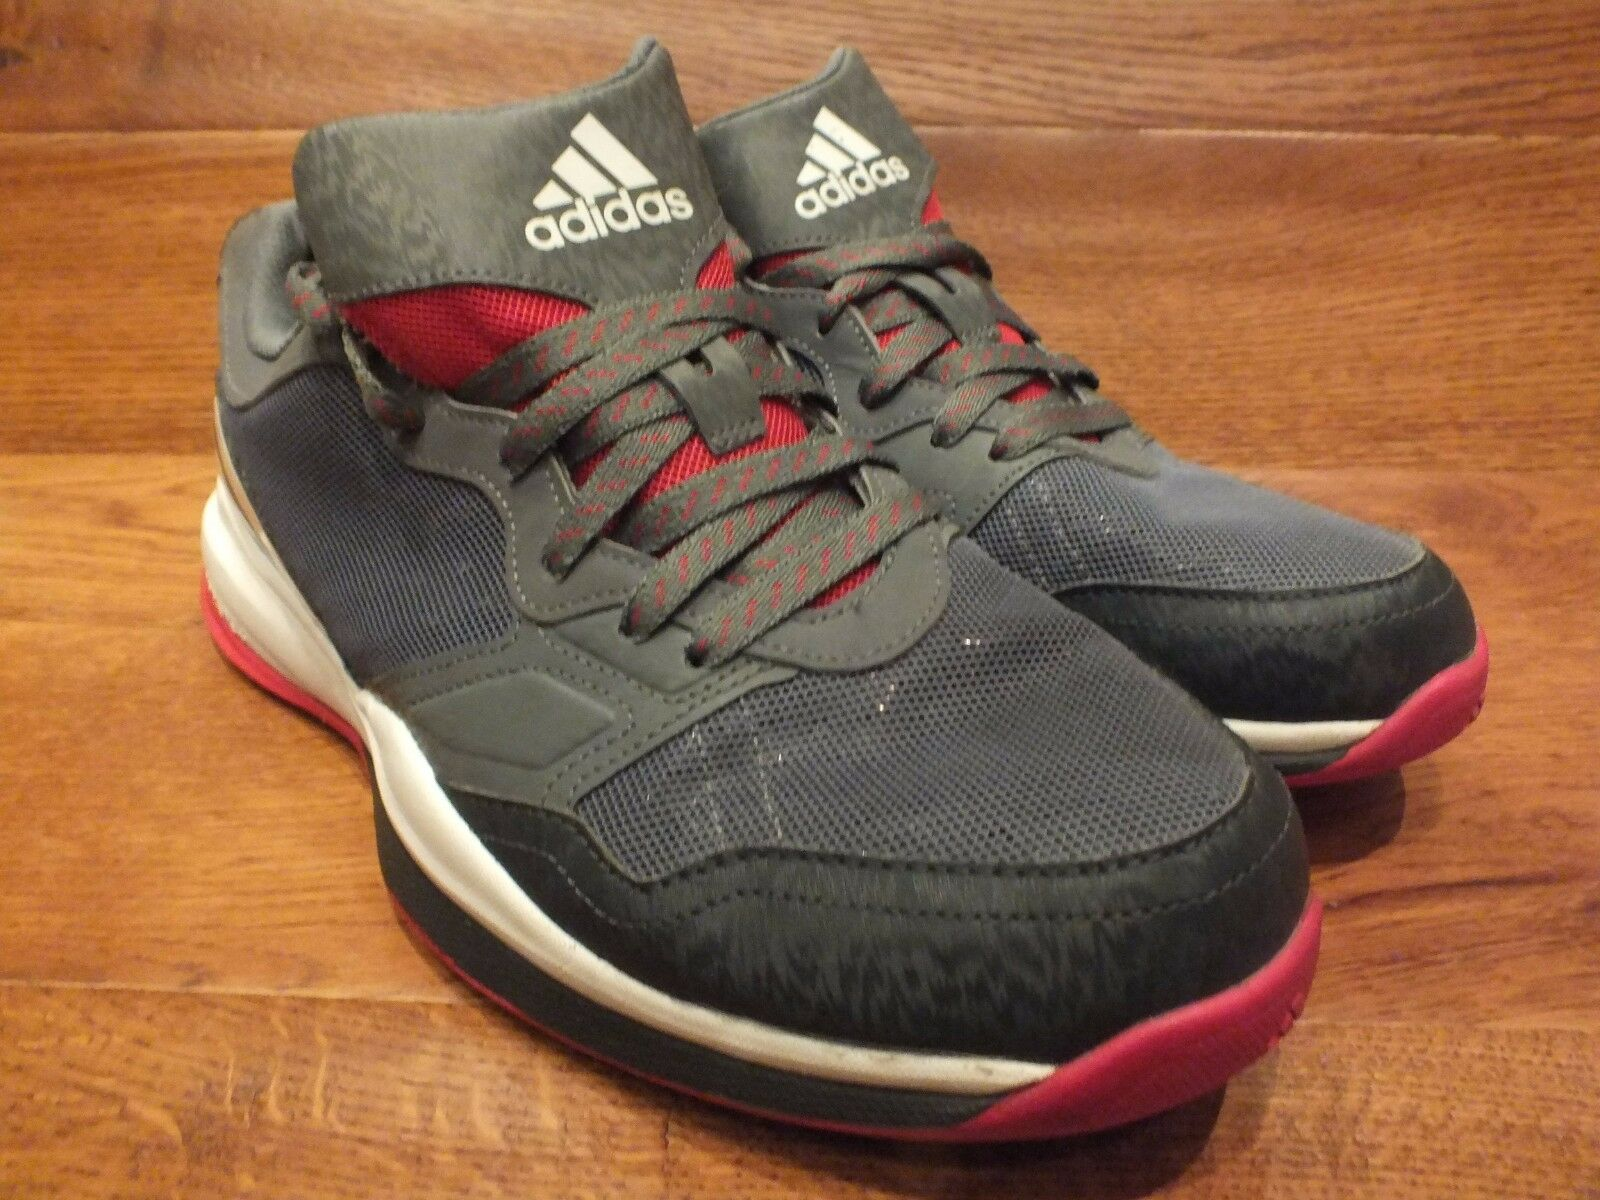 Adidas Crazytrain Grey  Running Shoes Trainers   The most popular shoes for men and women